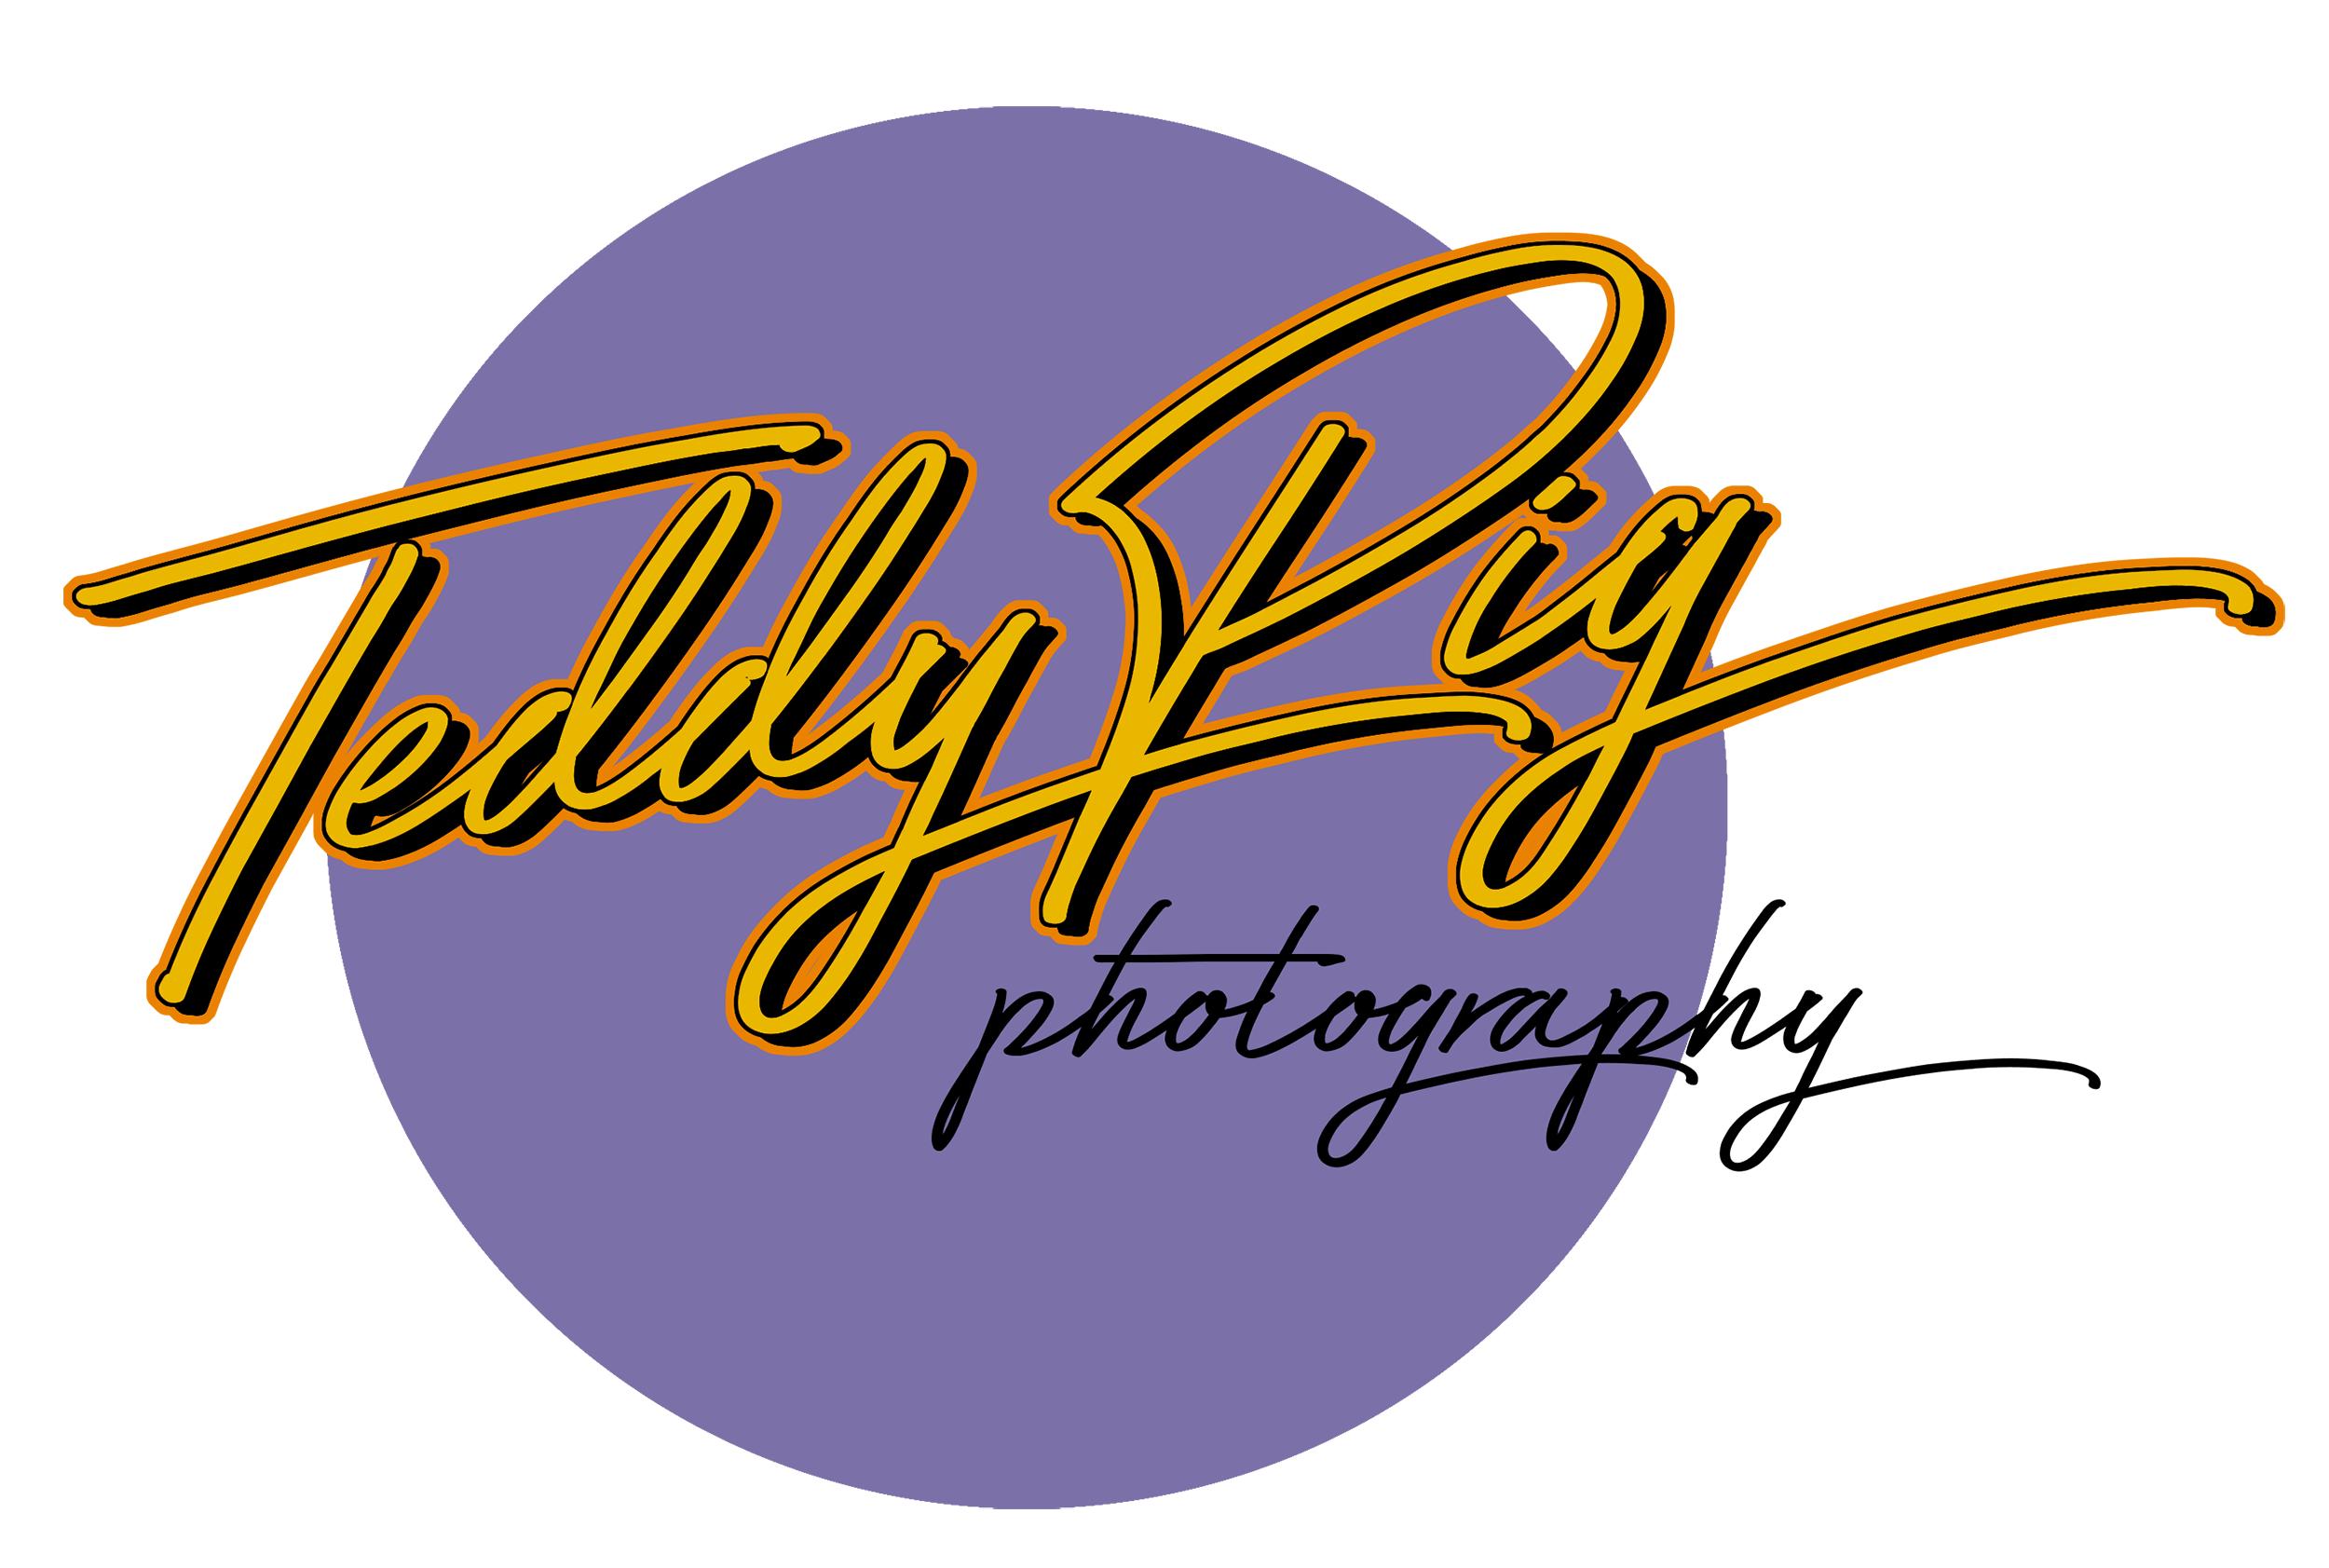 Teddy Pig Photography - Candid & Vivid Reportage Wedding Photography